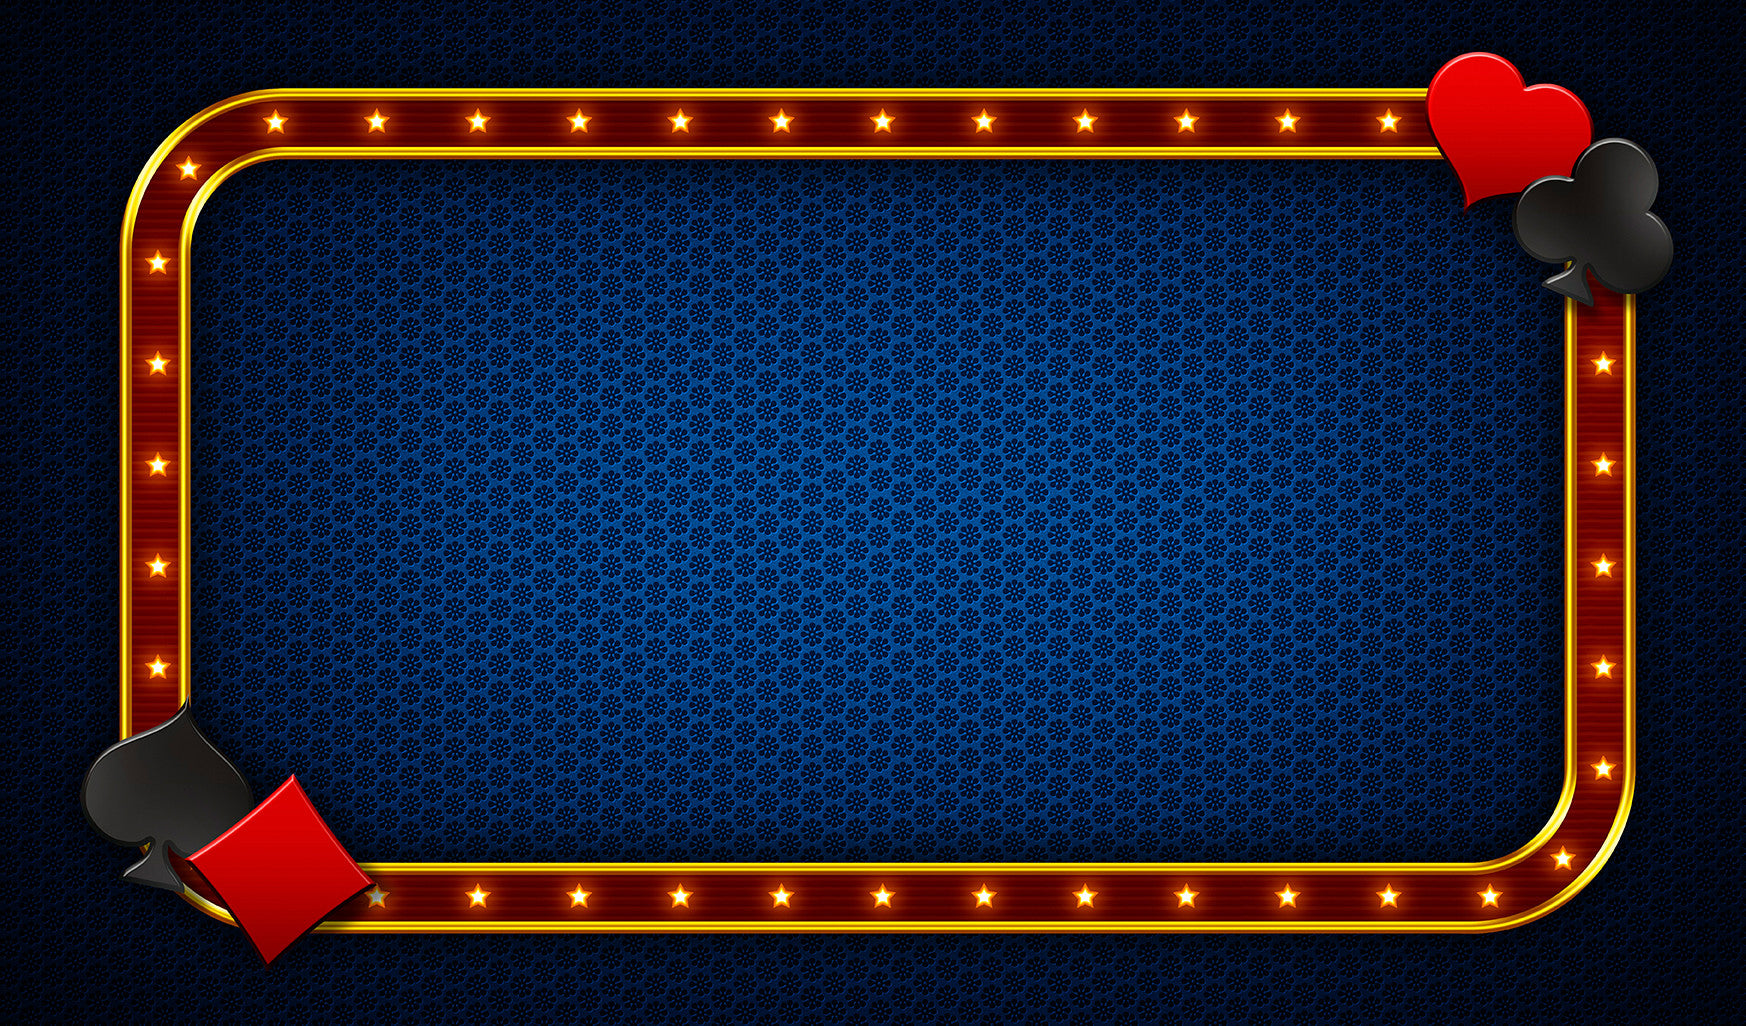 12X18 Deluxe Close Up Pad Casino Blue